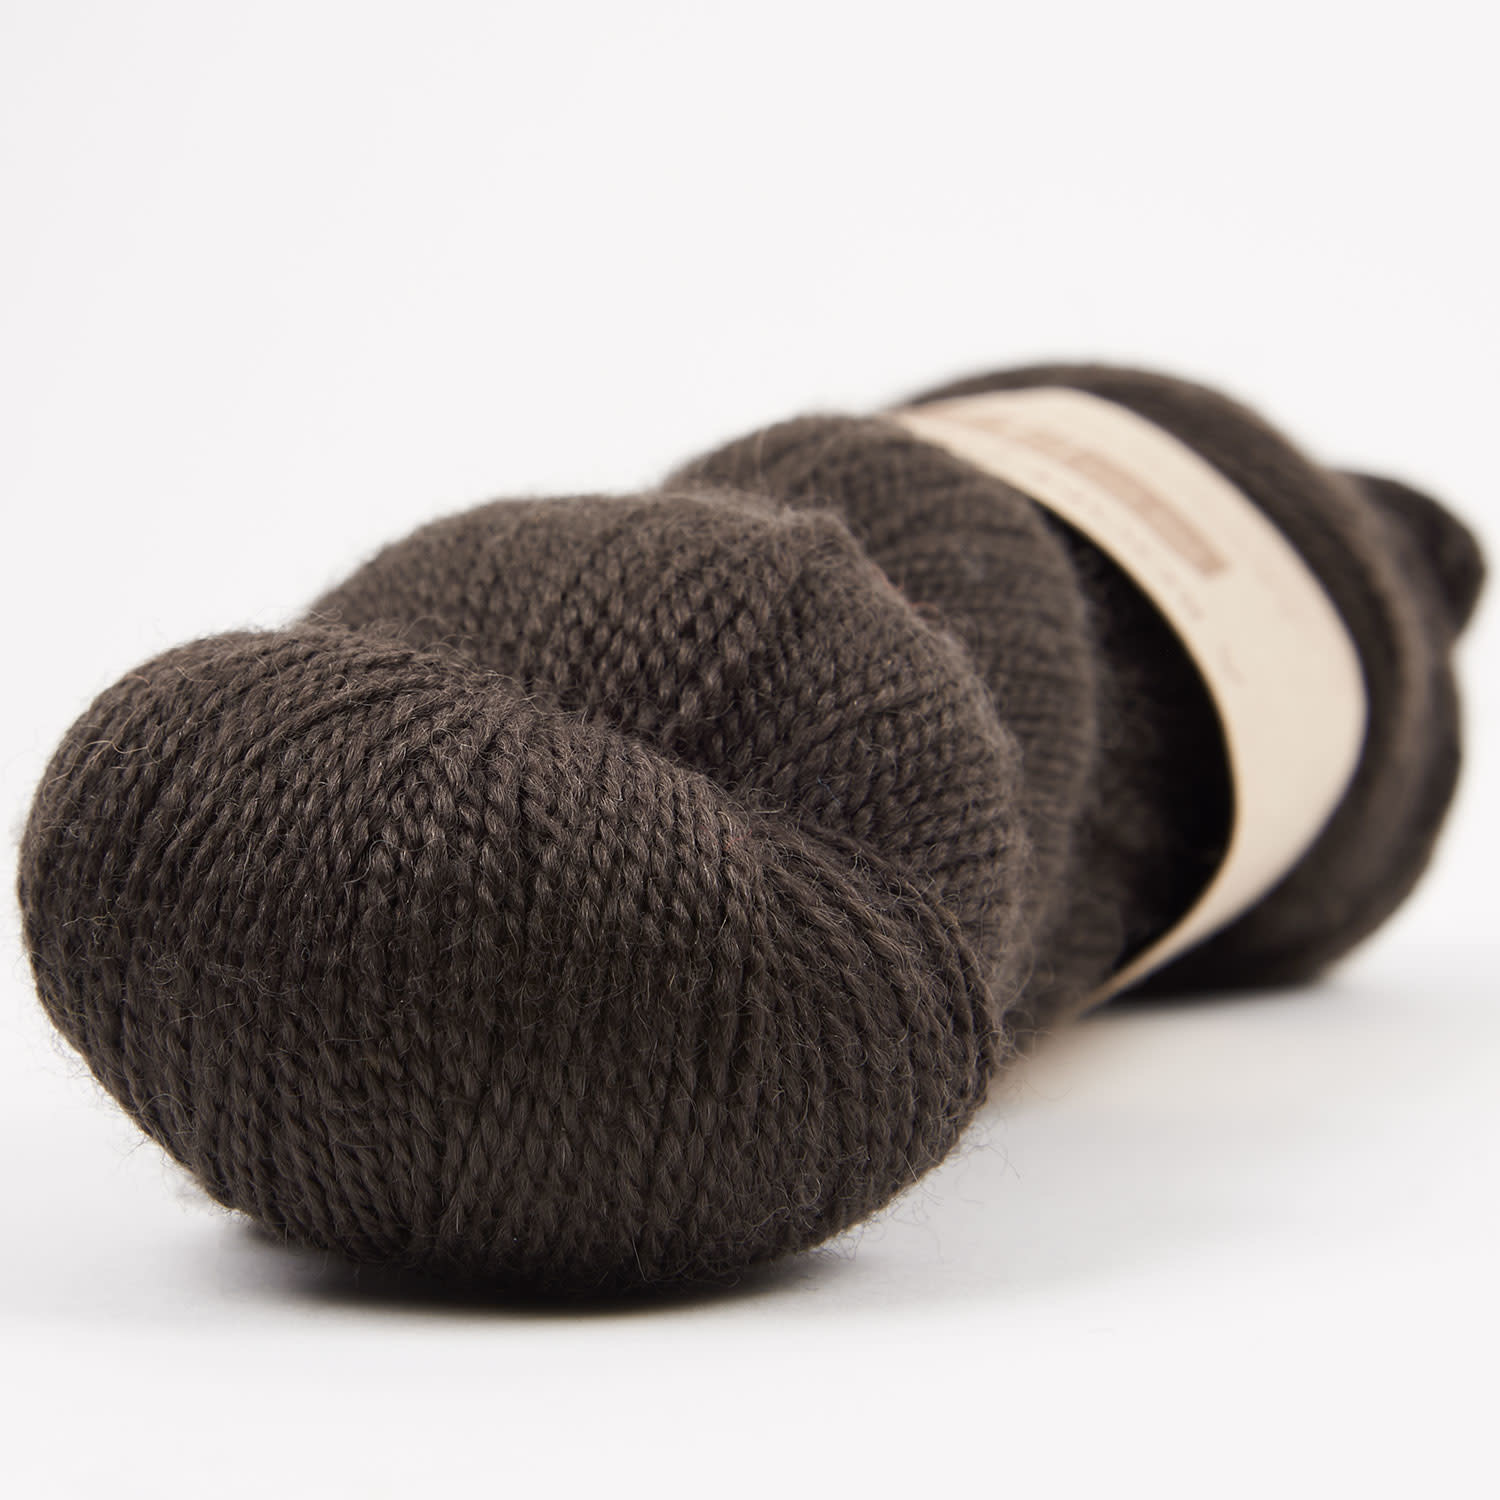 Susan Crawford A ROOM OF MY OWN: BLUEM SOCK - LOAM